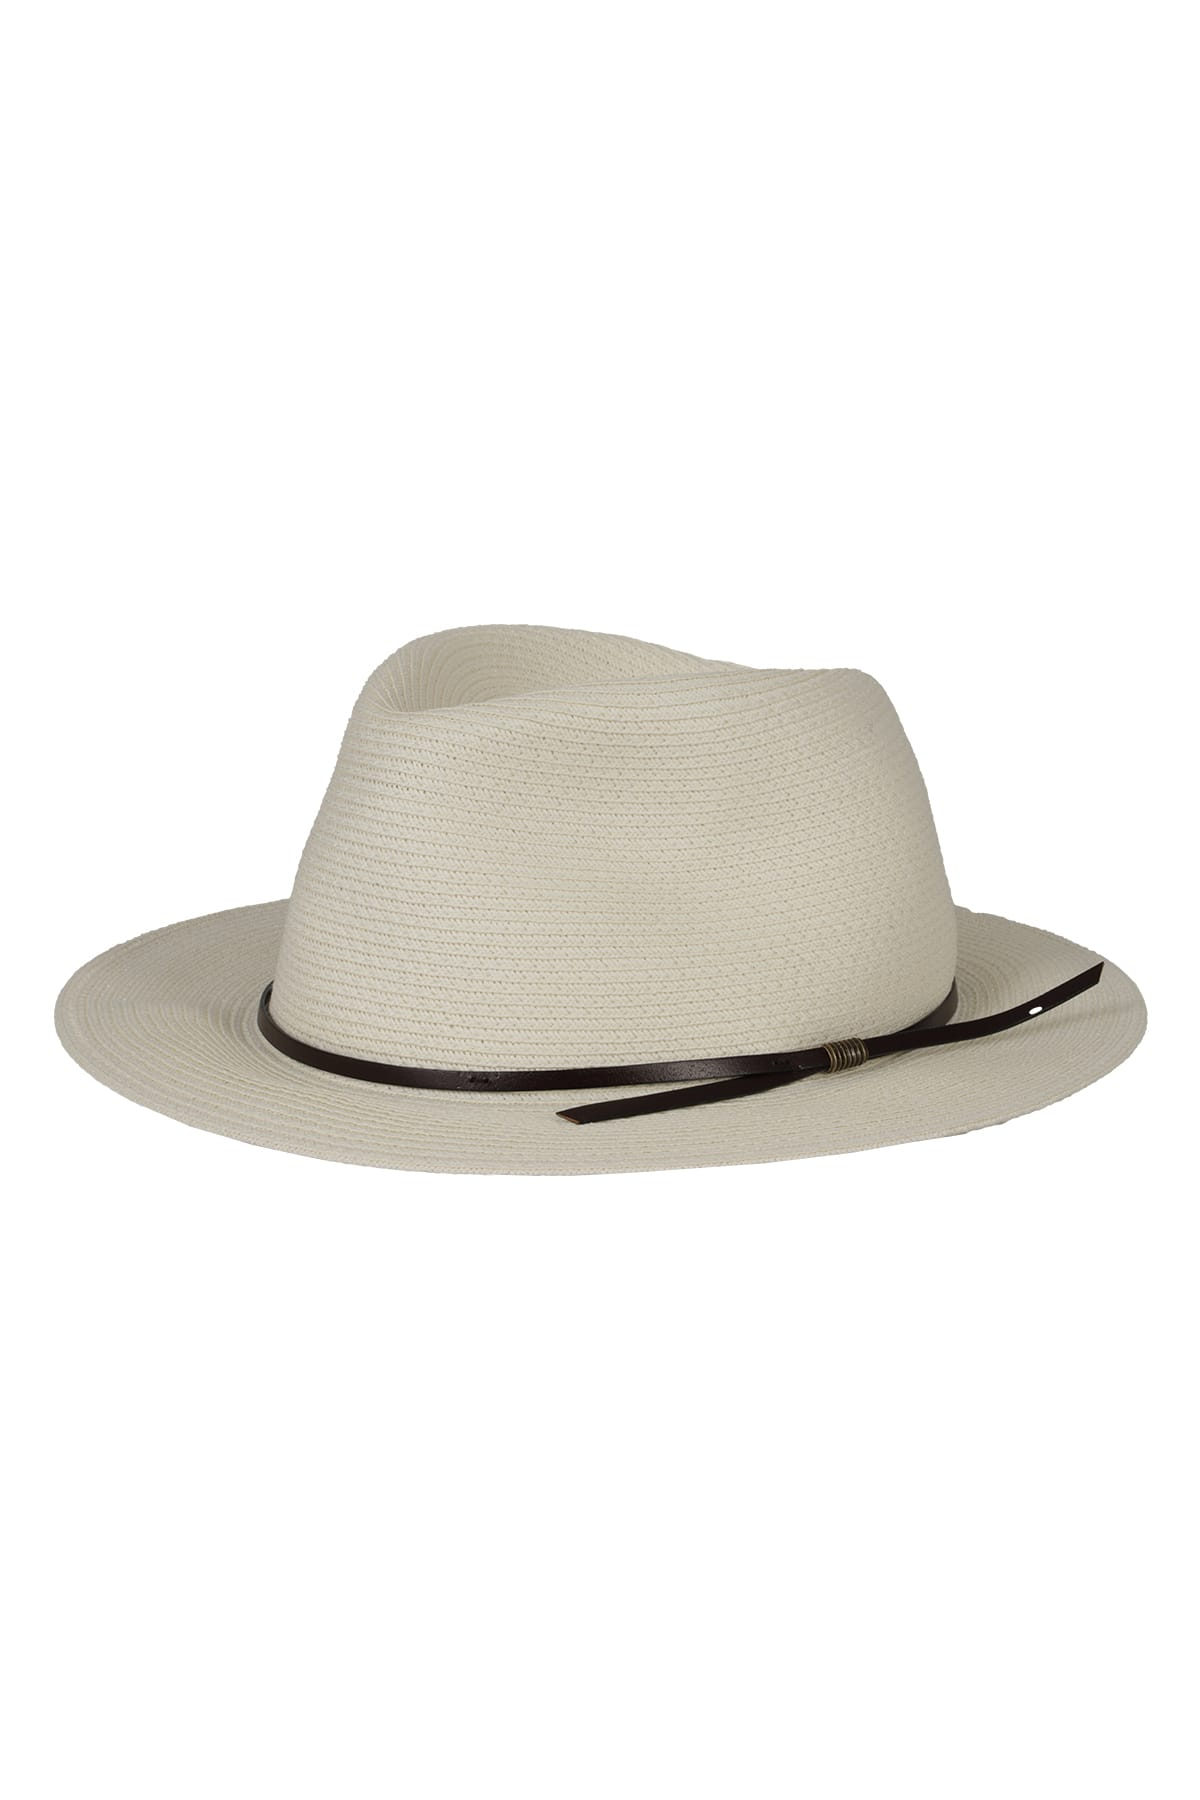 MC2 Saint Barth Hat